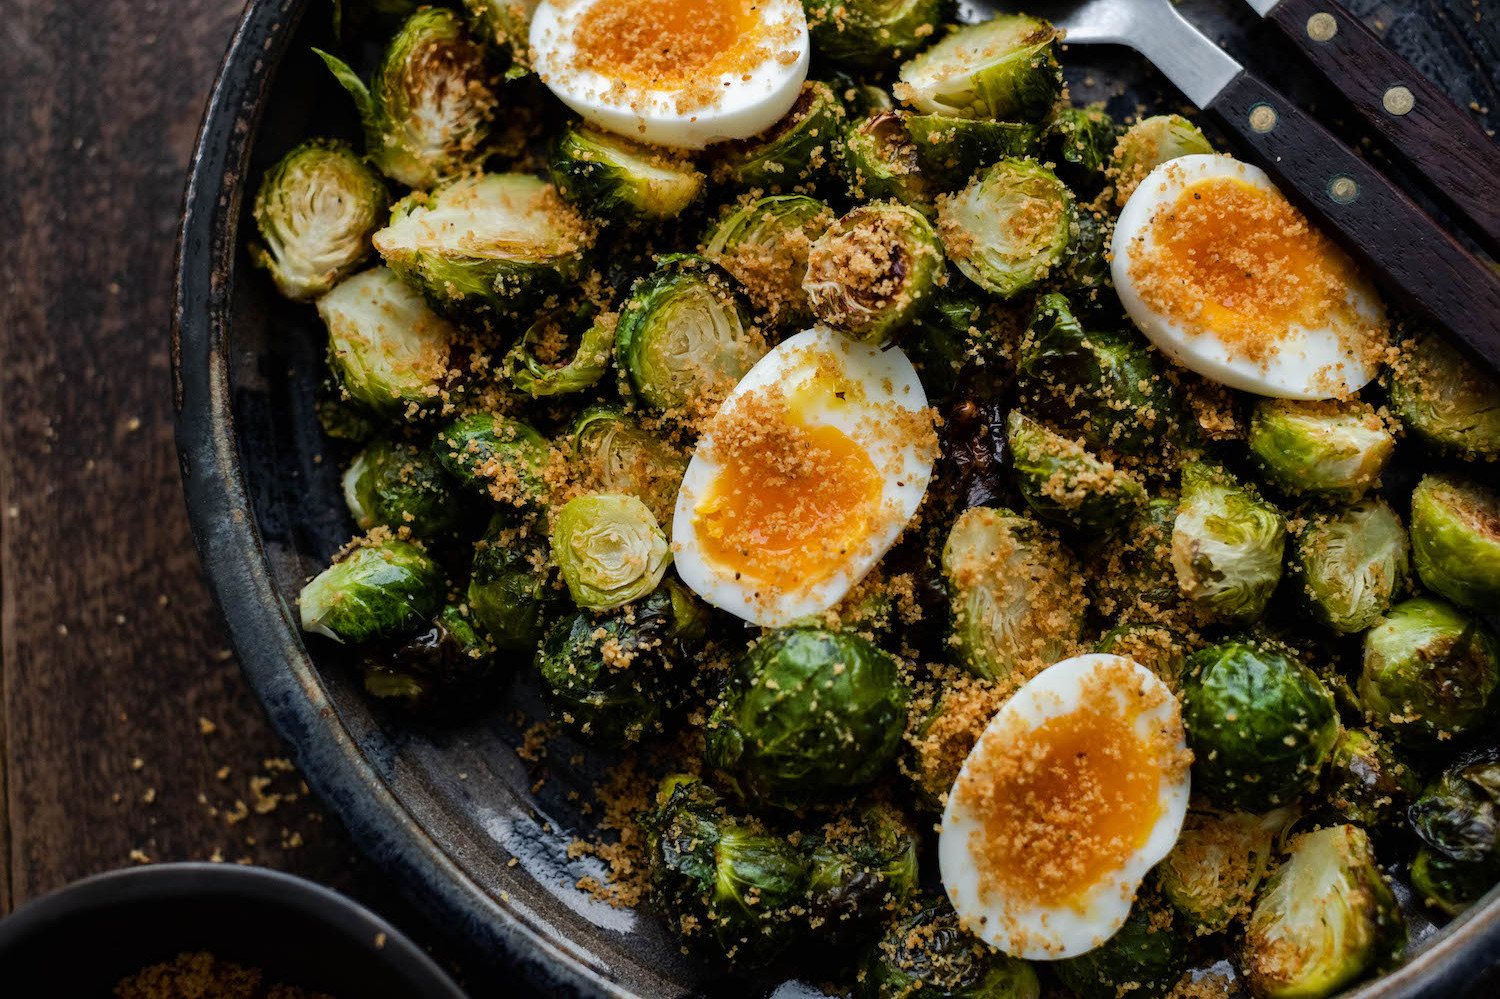 This simple side-dish is made by mixing roasted brussel sprouts, garlic, breadcrumbs, and olive oil together. The dish features jammy organic hard-boiled eggs. | peteandgerrys.com